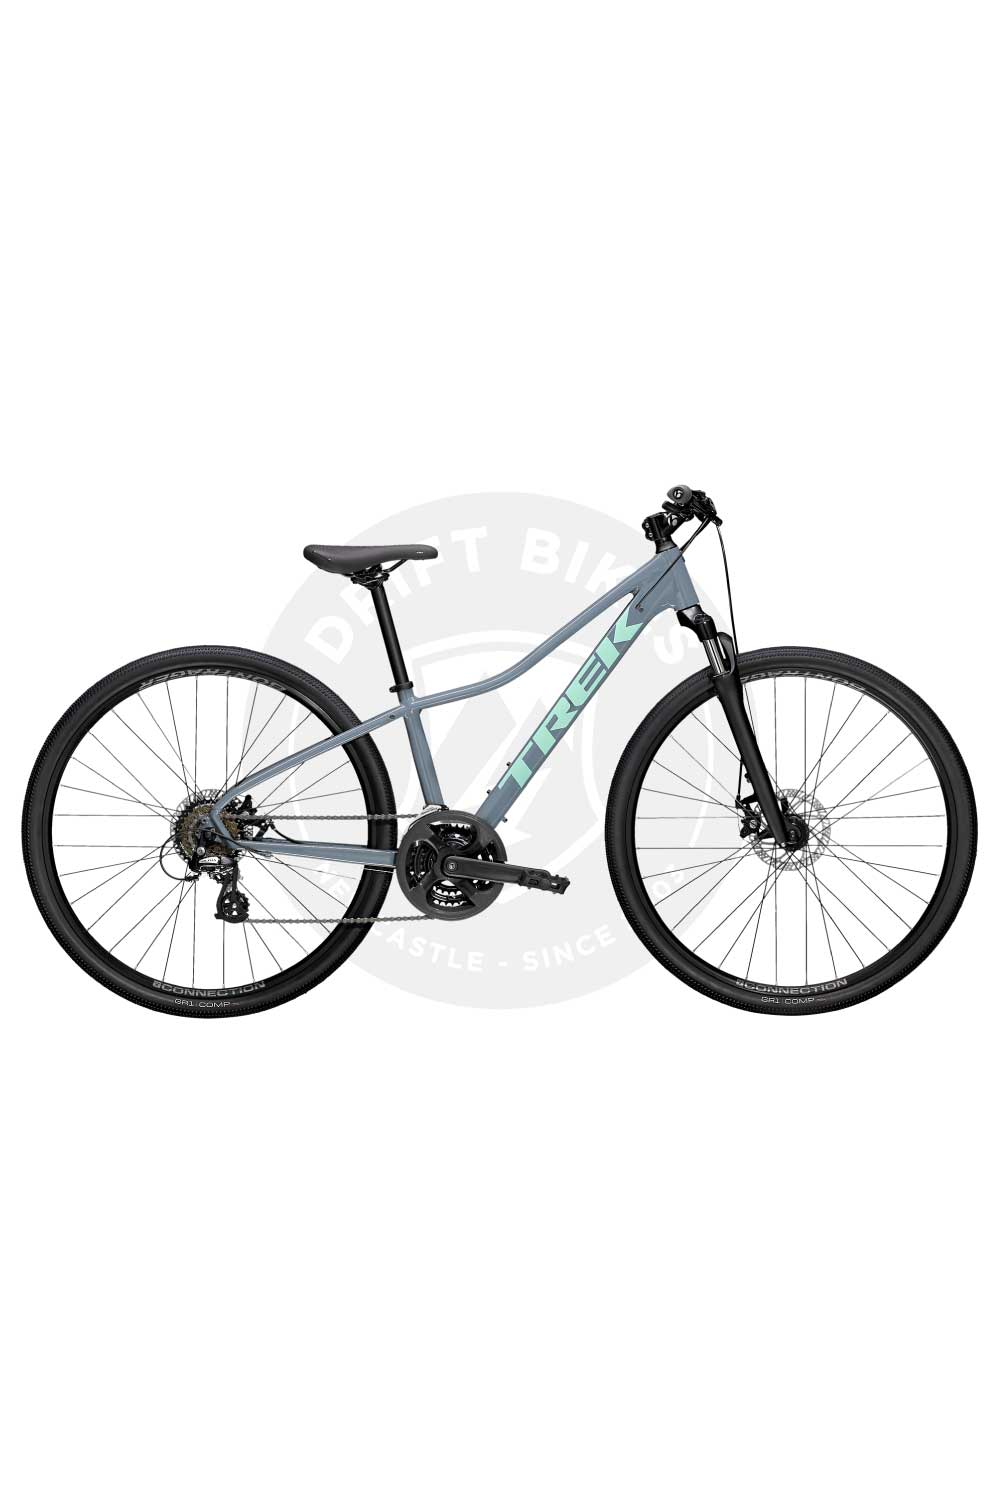 TREK 2021 Dual Sport 1 Women's Lifestyle Bike